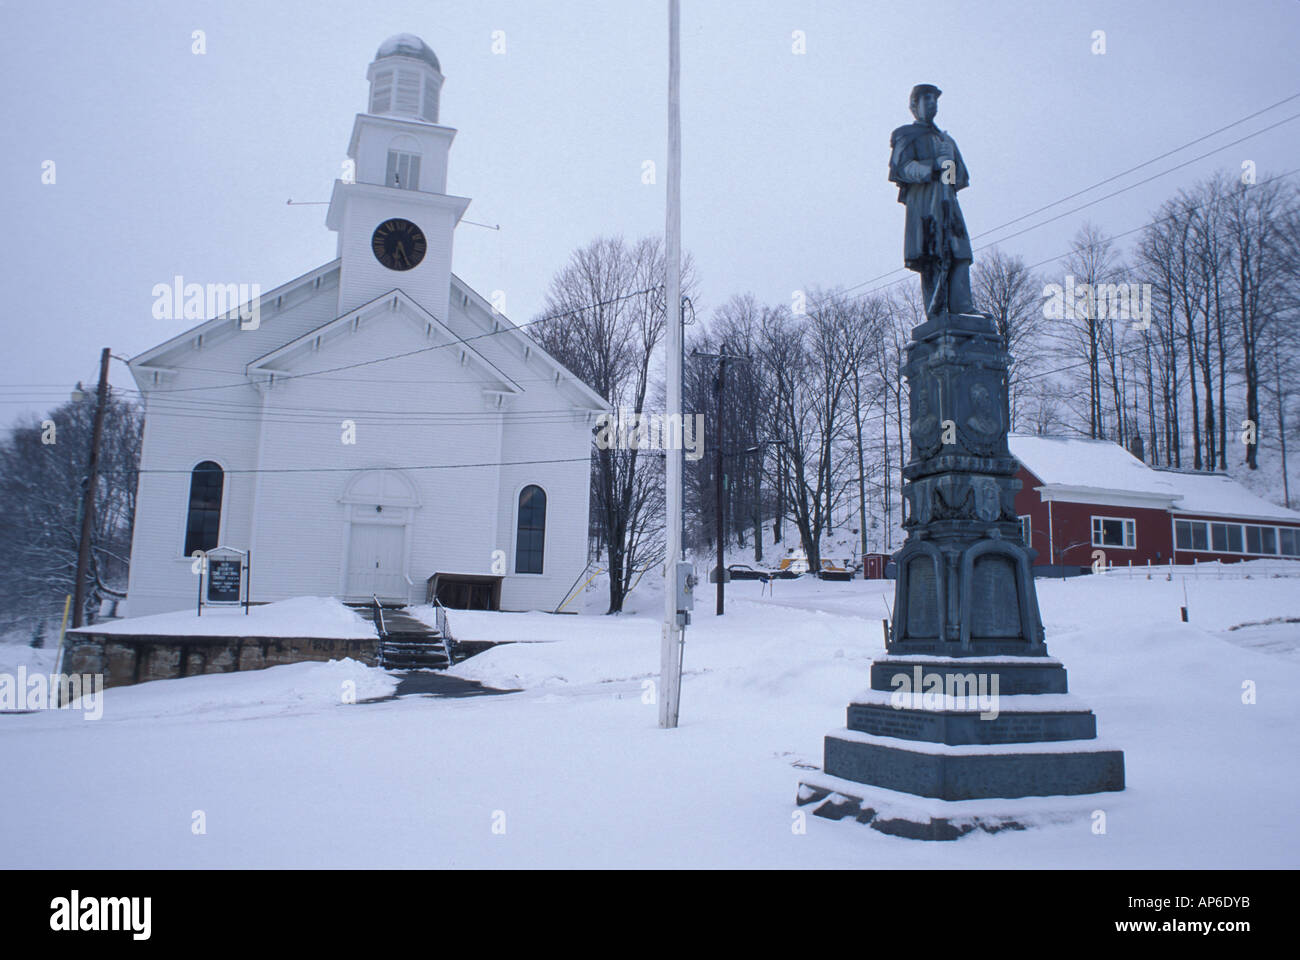 Coventry, VT The town square. Northern Forest. Winter. - Stock Image